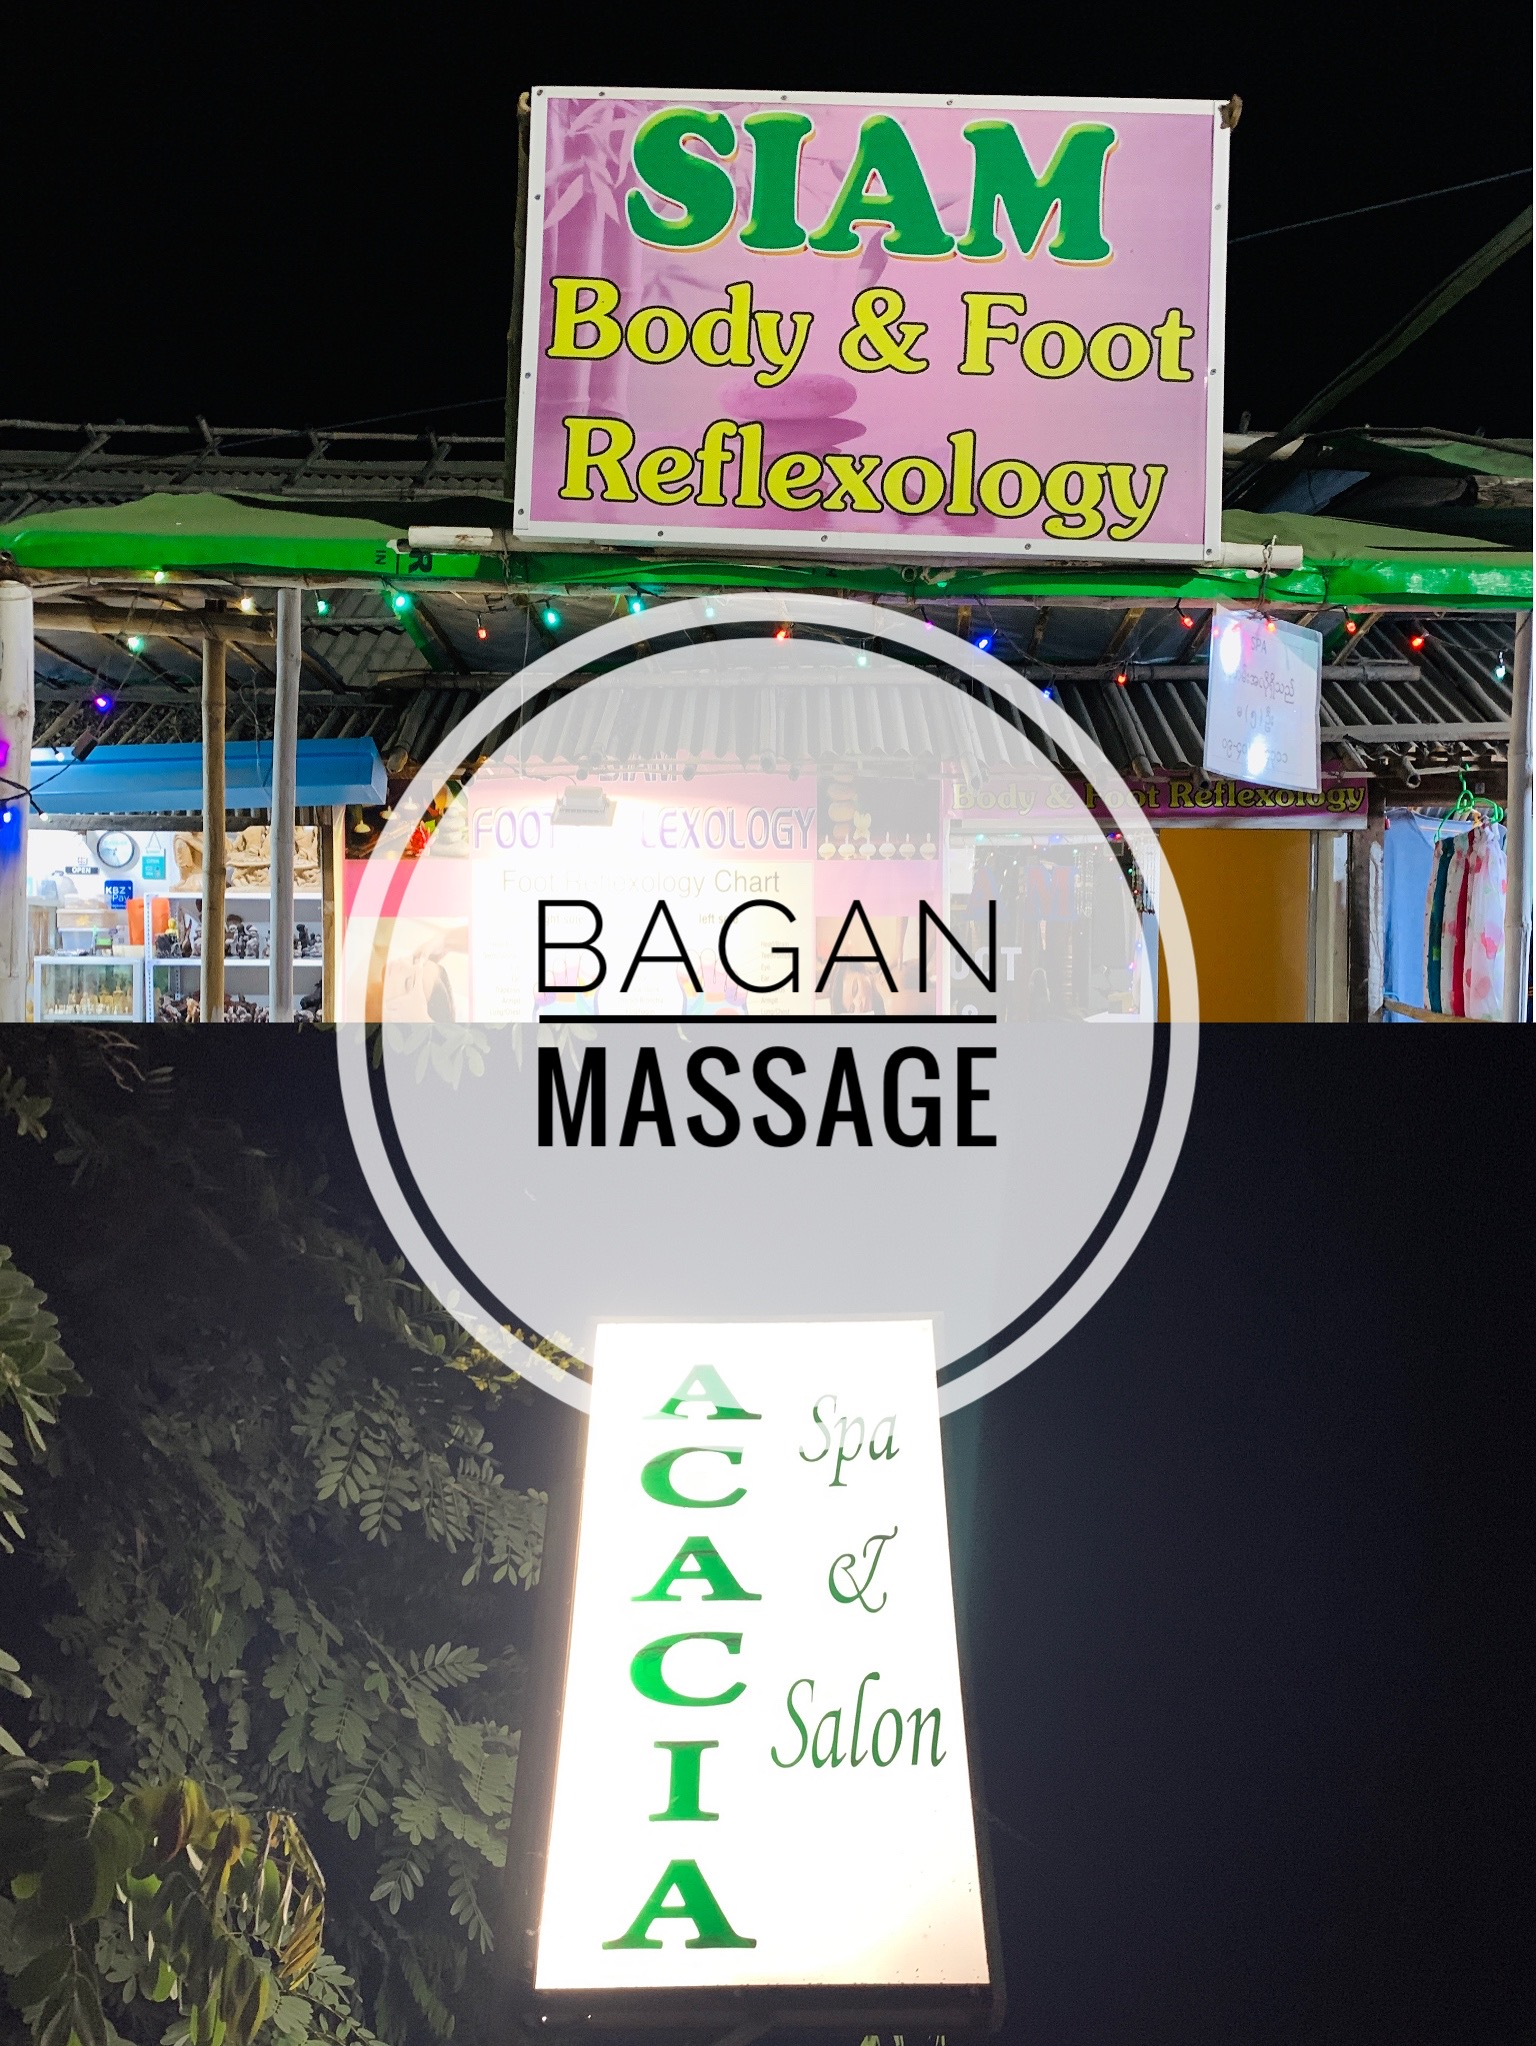 Bagan Massage 蒲甘按摩 10